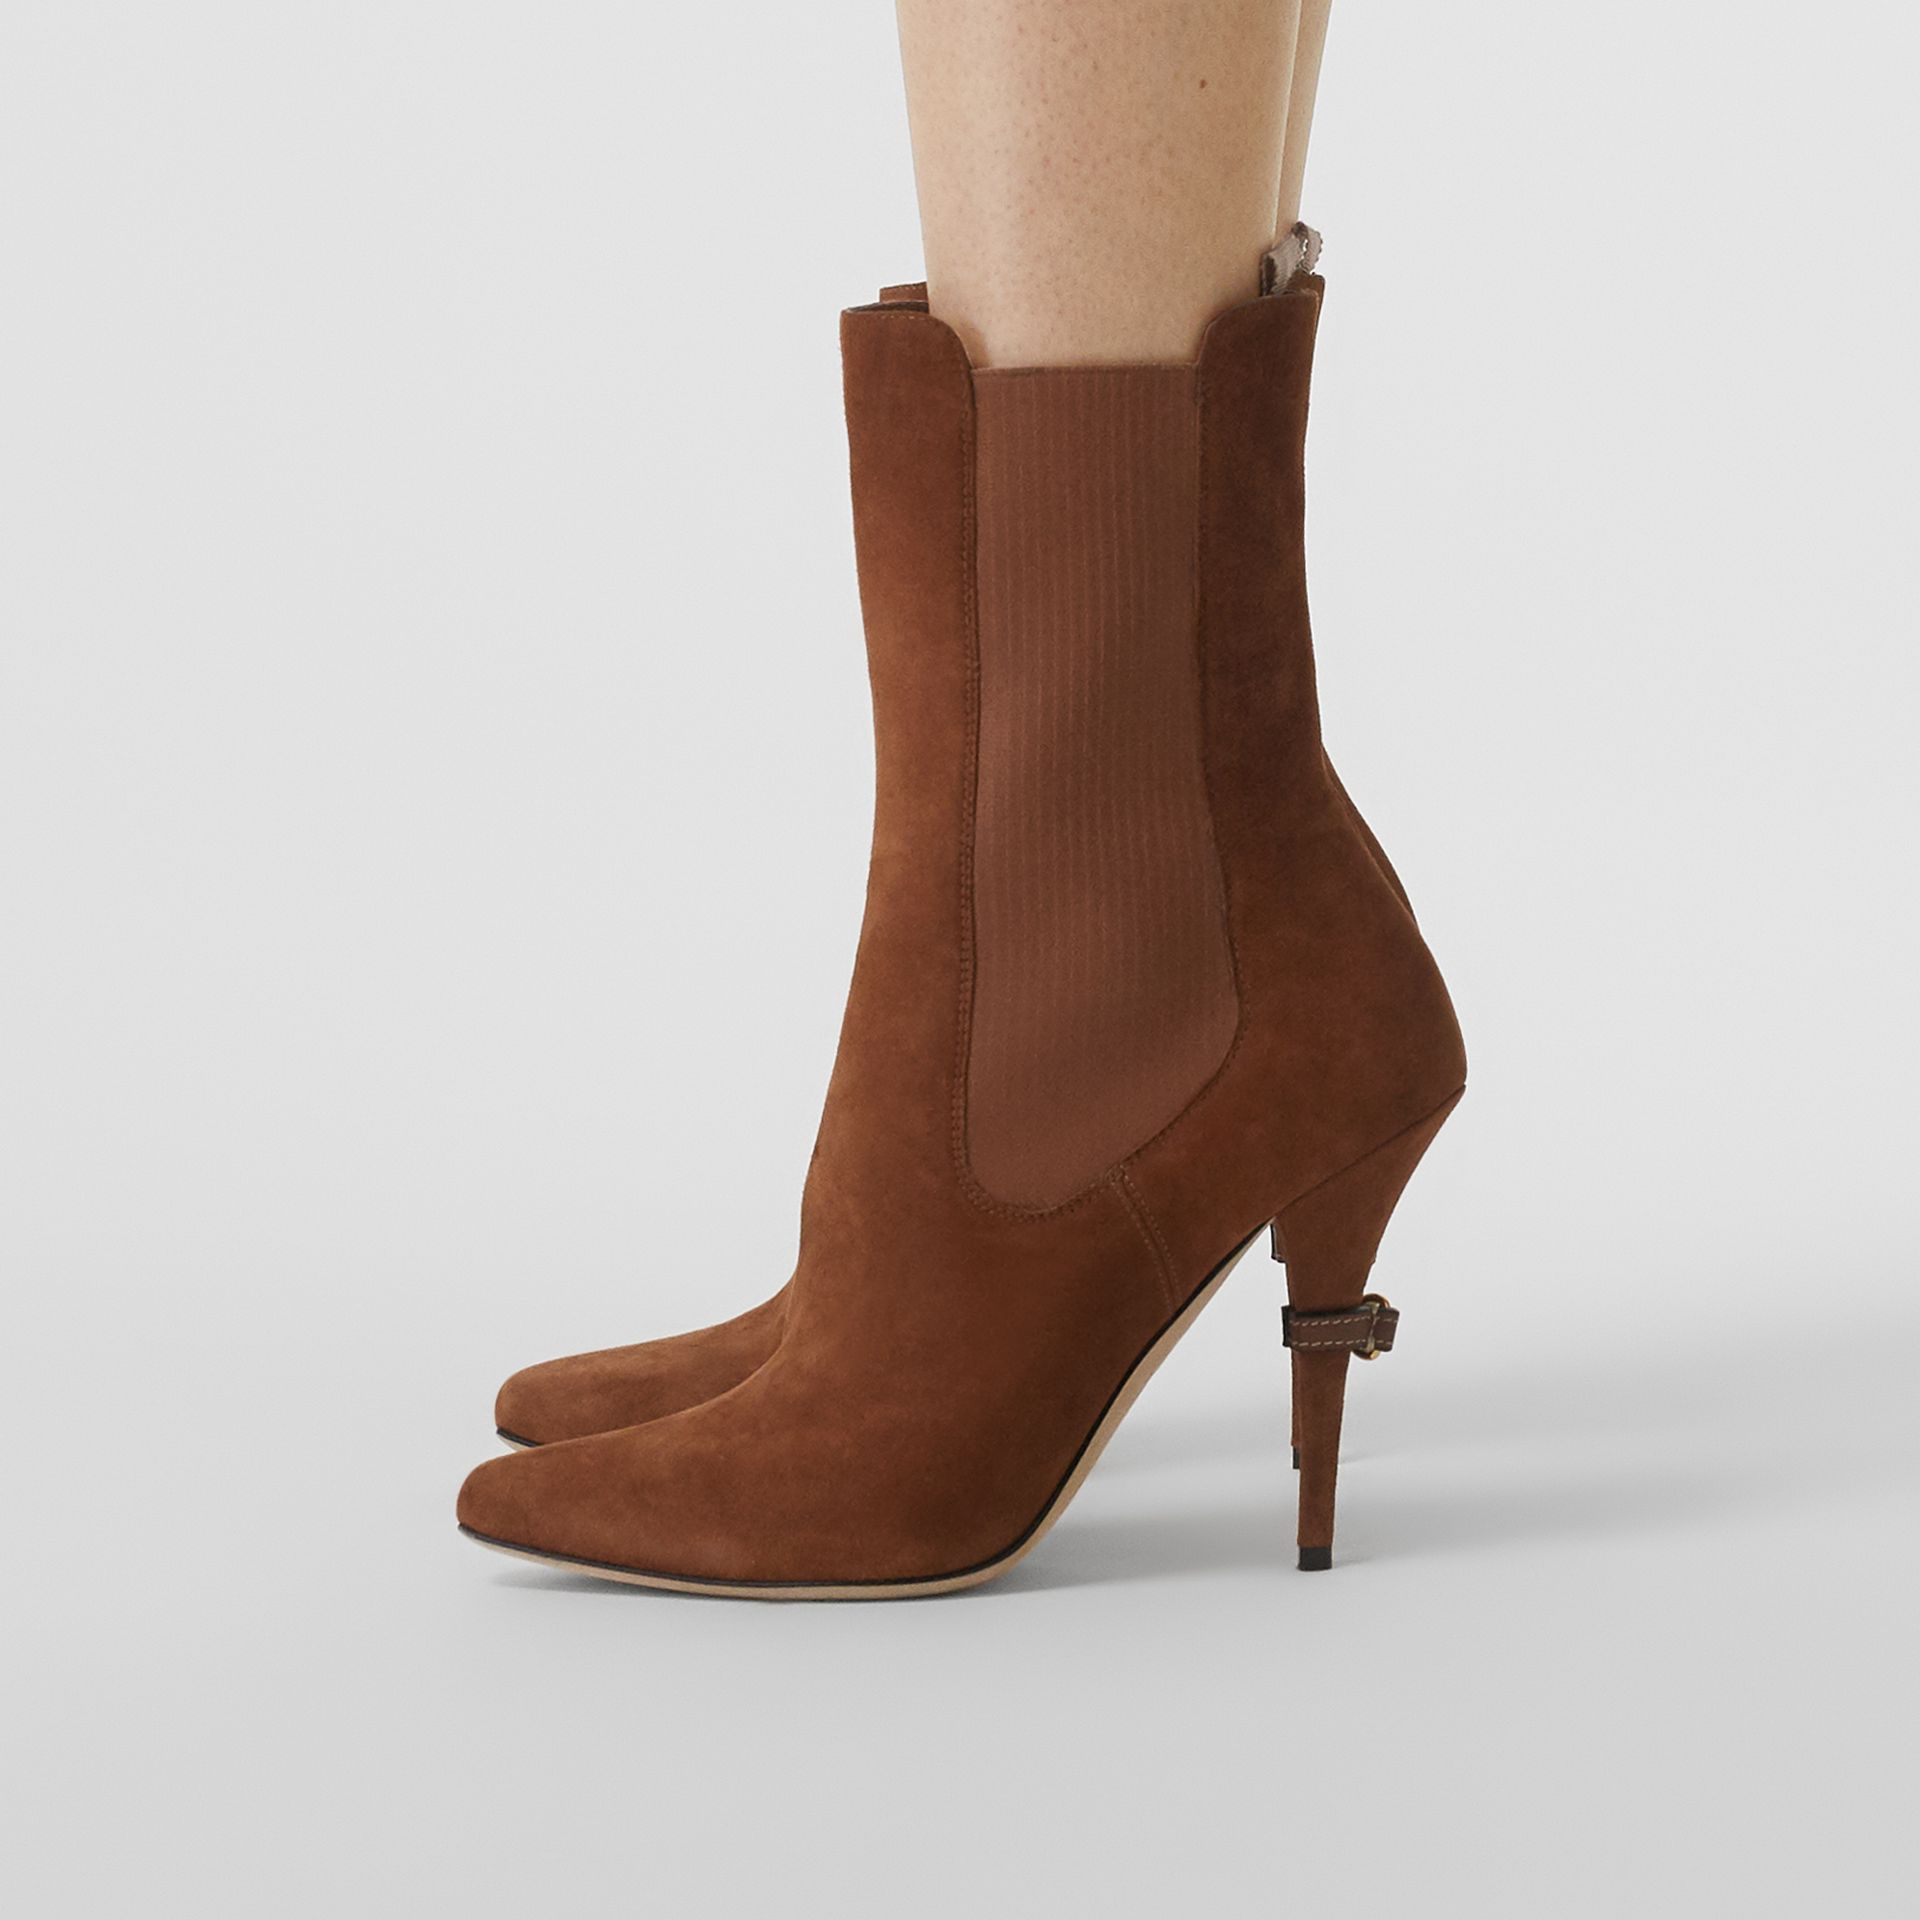 D-ring Detail Suede Ankle Boots in Tan - Women | Burberry - gallery image 2